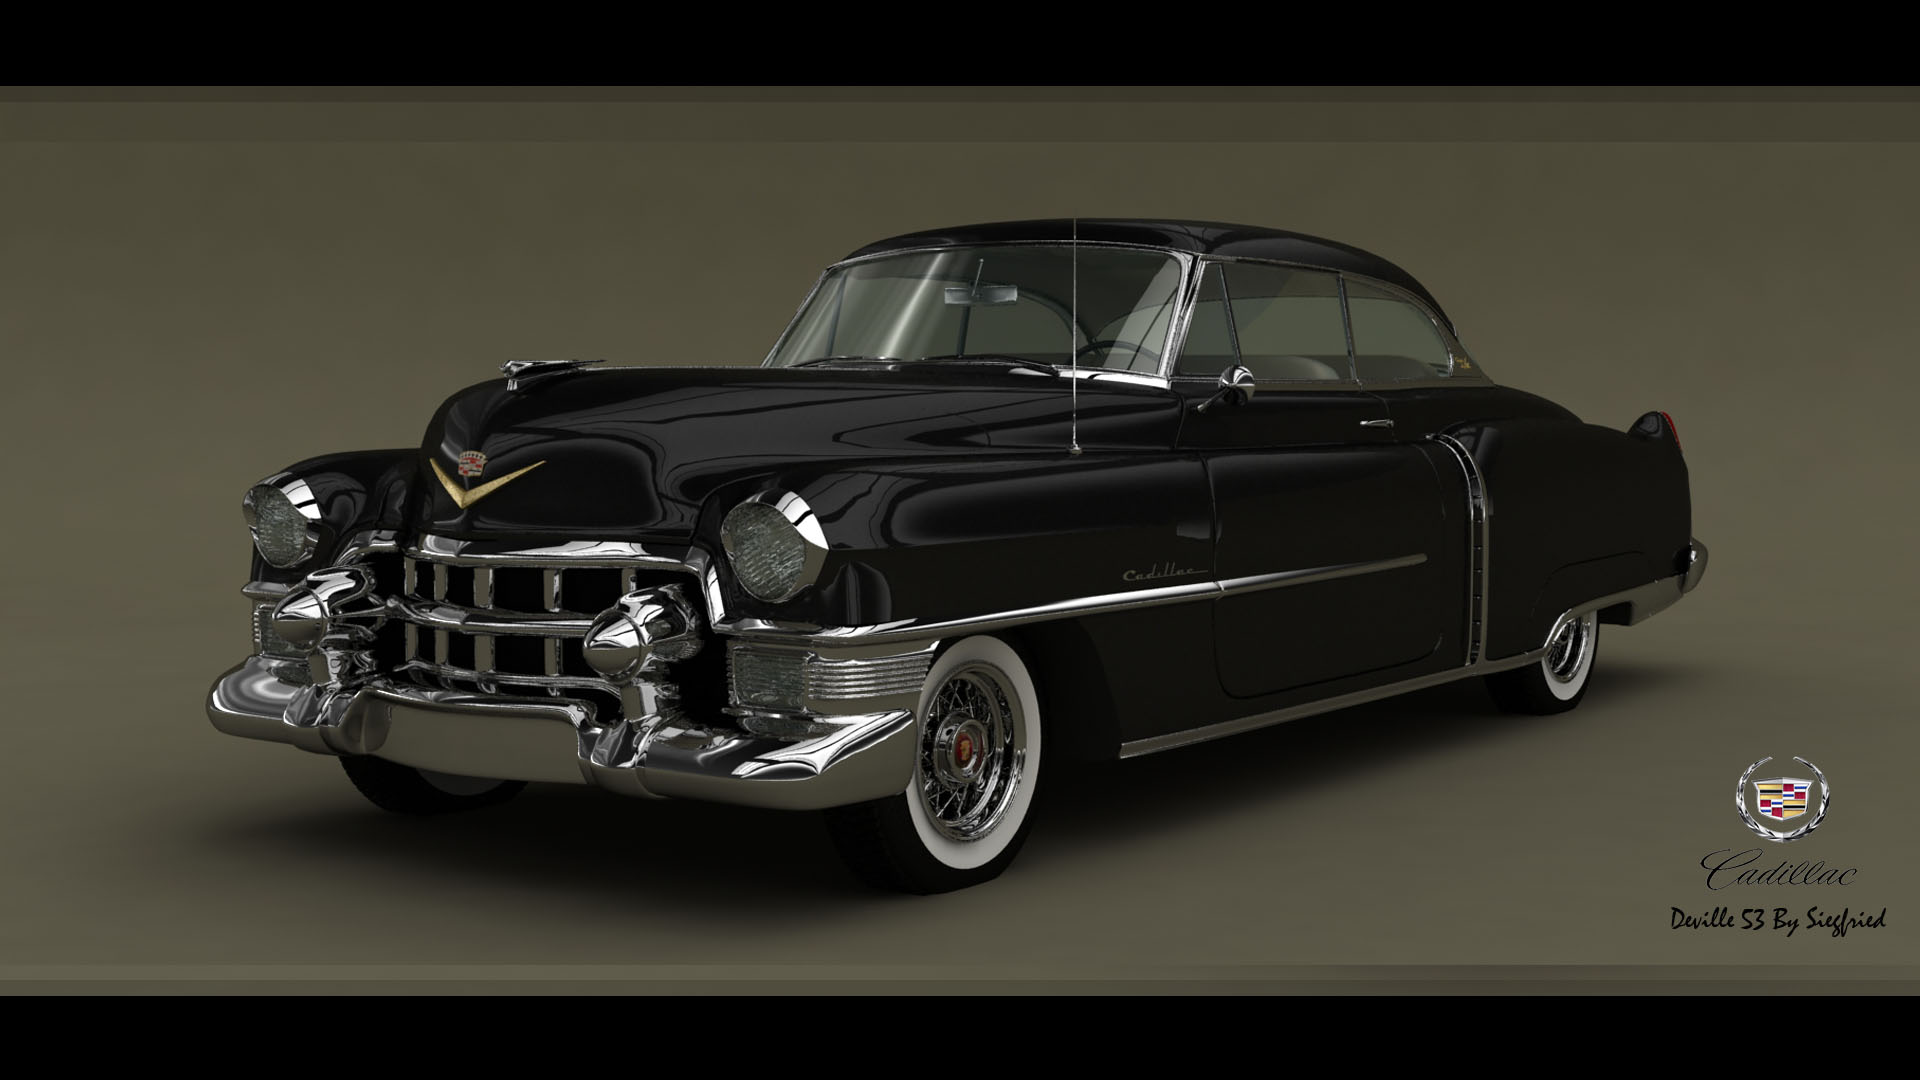 Cadillac Deville coupe 1953 by Siegfried-Ukr on DeviantArt